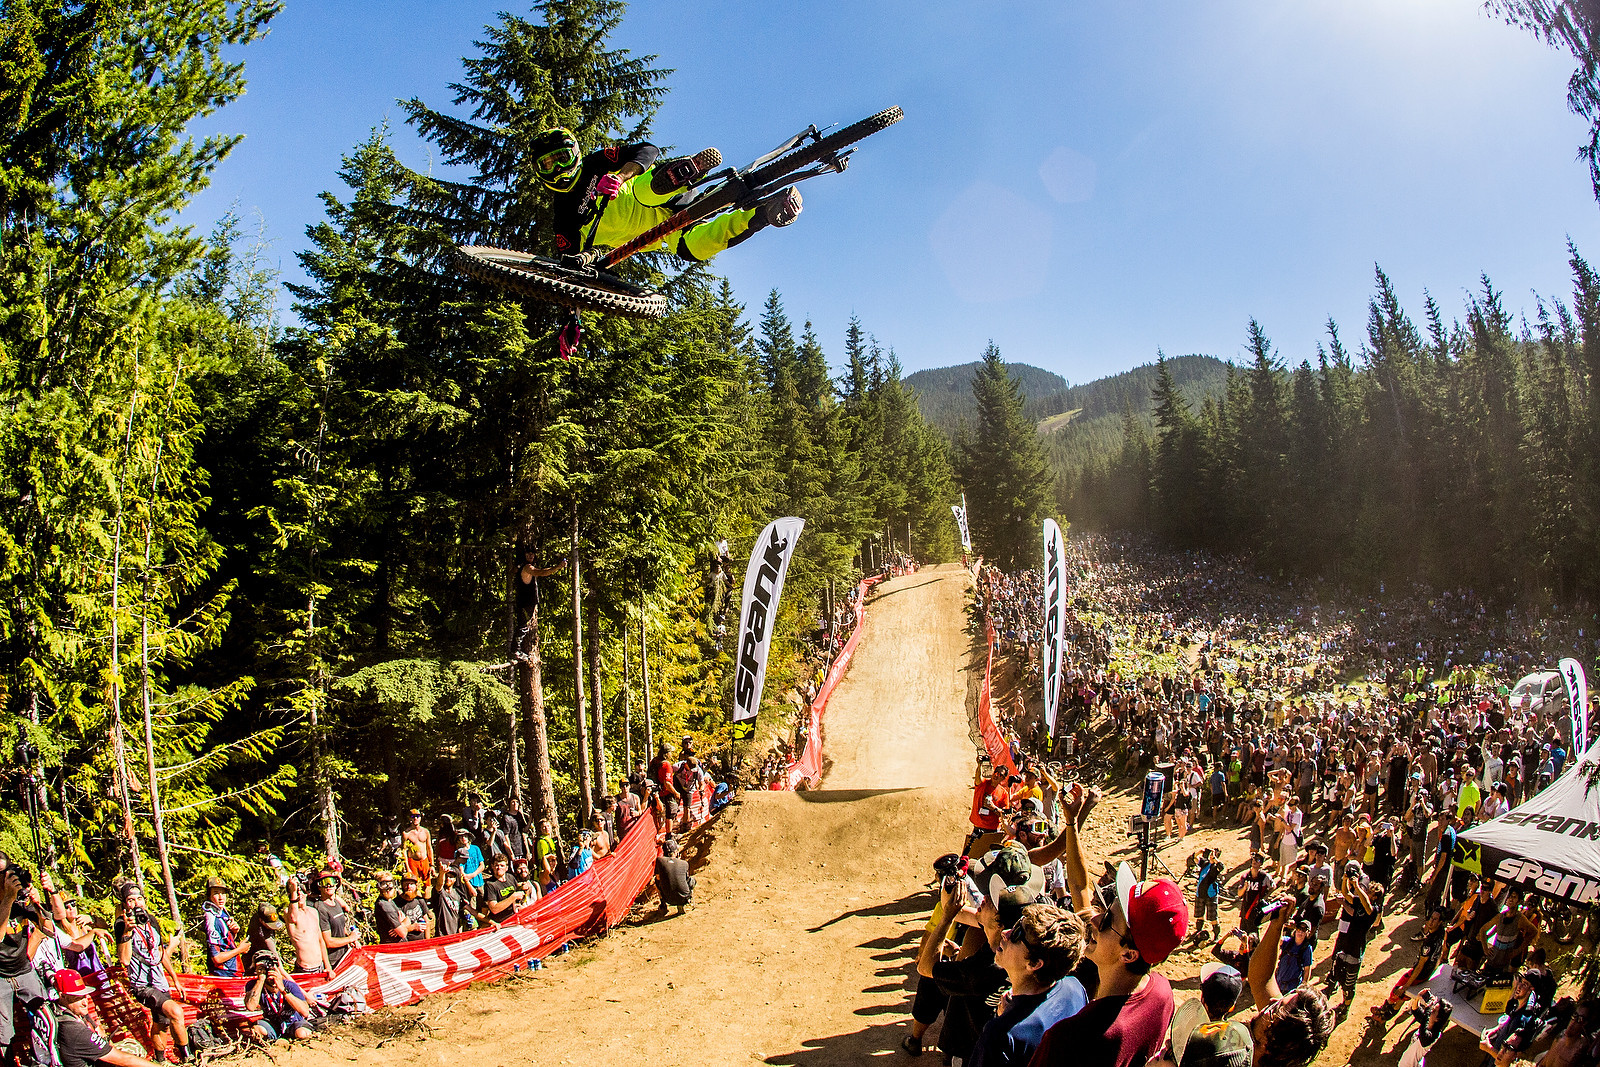 Allan Airtime Cooke - Whip Off World Champs Photo Blast - Mountain Biking Pictures - Vital MTB